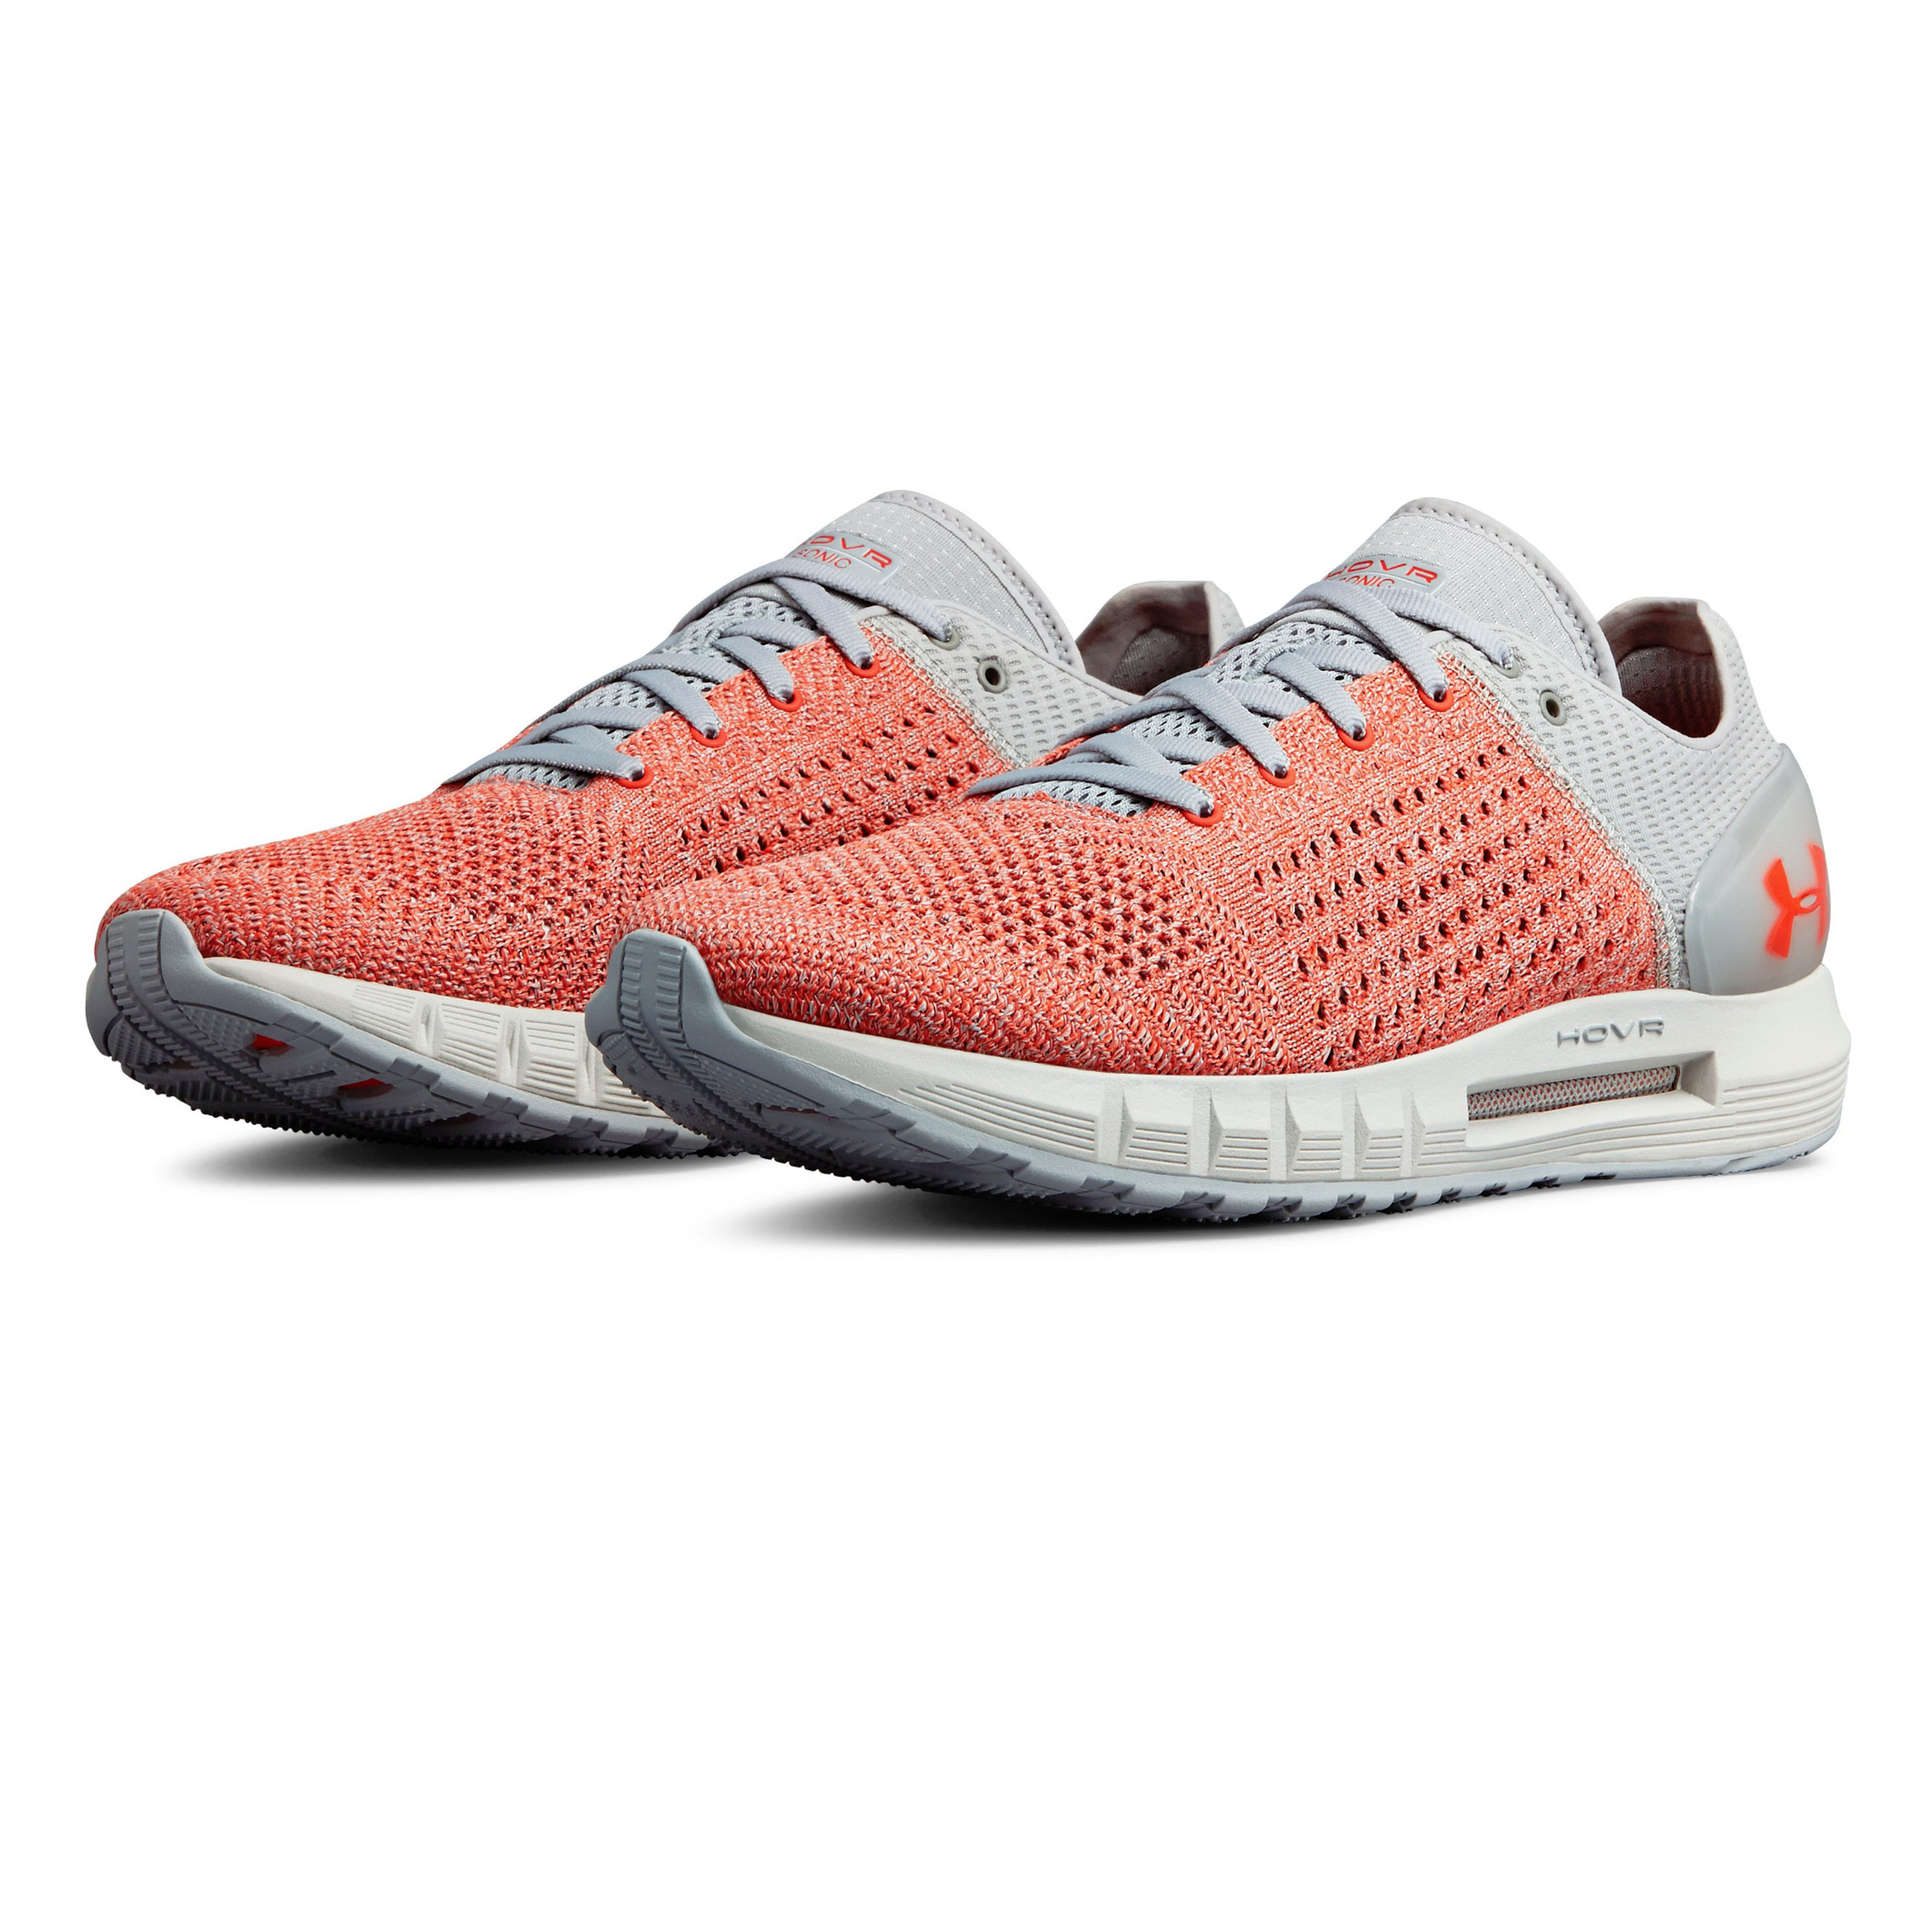 c9f391d0bbd Details about Under Armour Mens HOVR Sonic NC Running Shoes Trainers  Sneakers Grey Orange